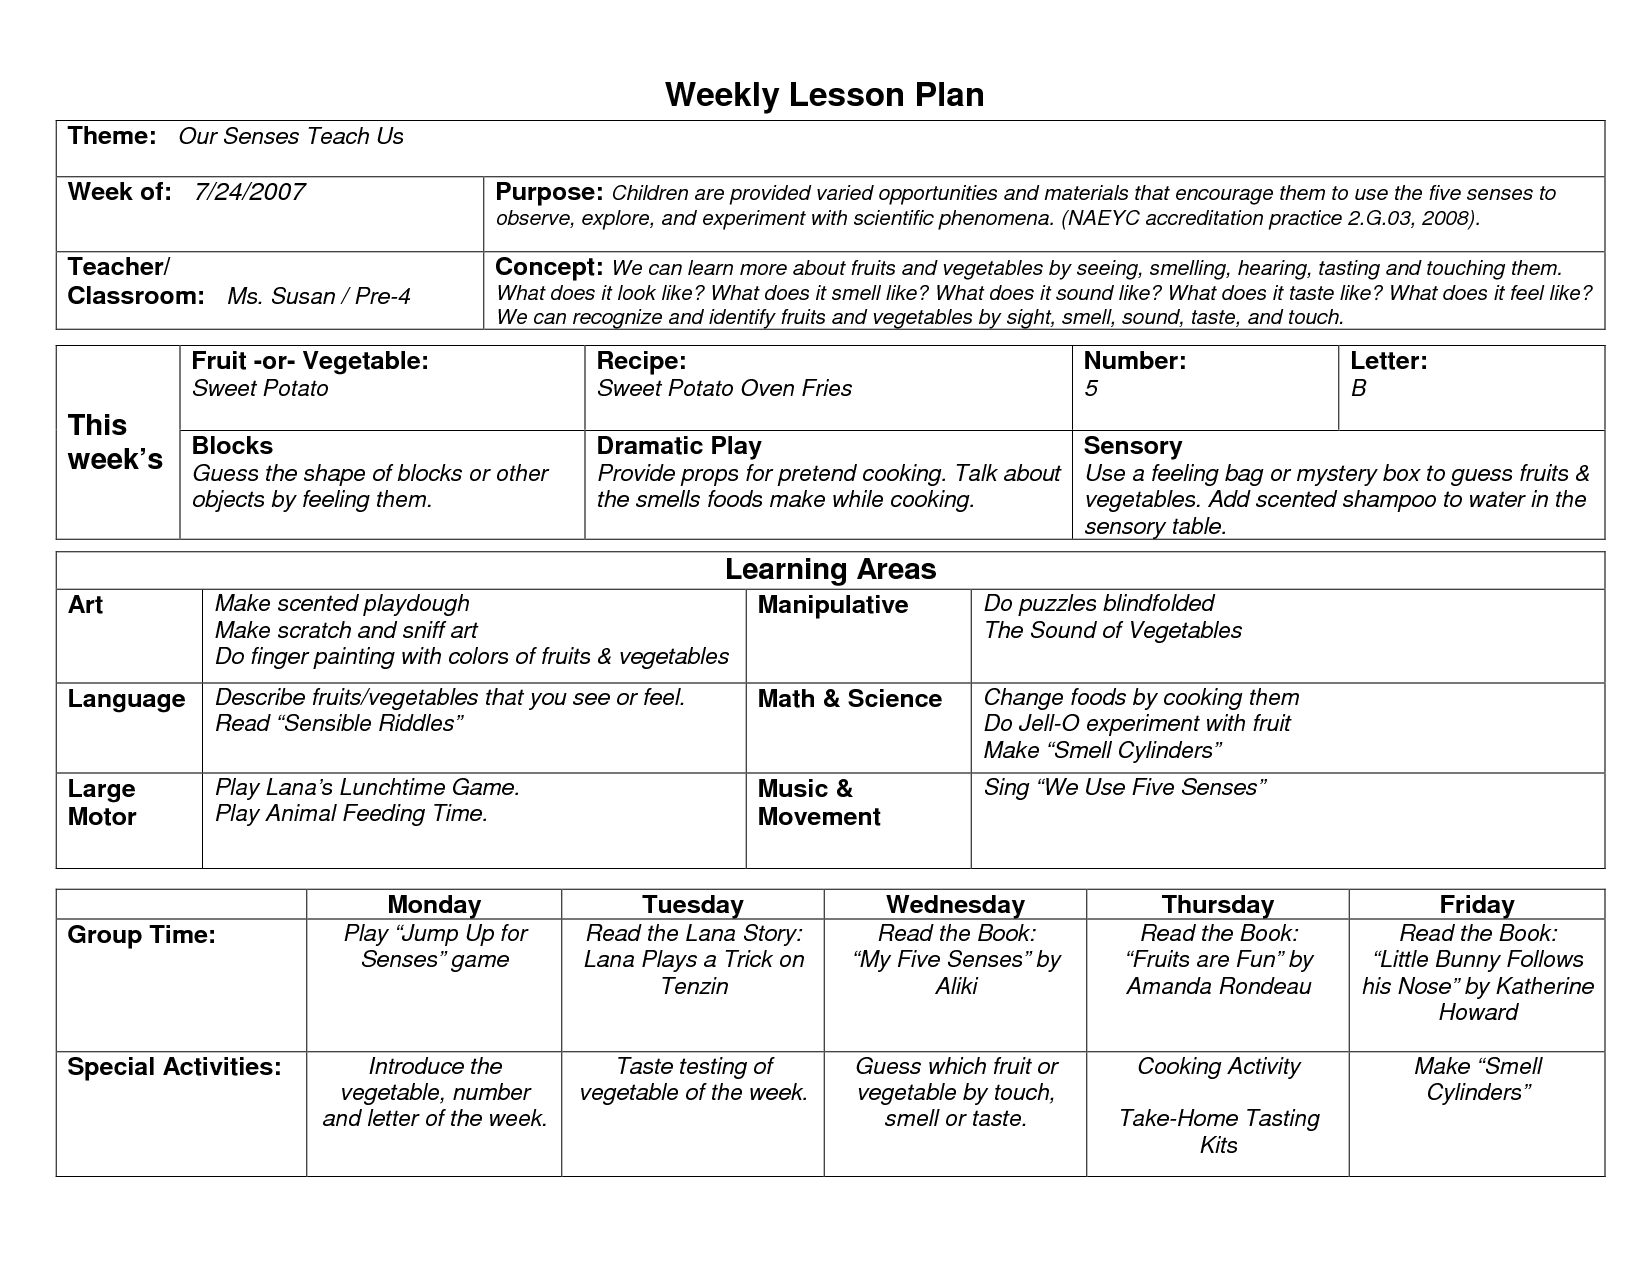 Naeyc lesson plan template for preschool sample weekly lesson plan naeyc lesson plan template for preschool sample weekly lesson plan template fandeluxe Images